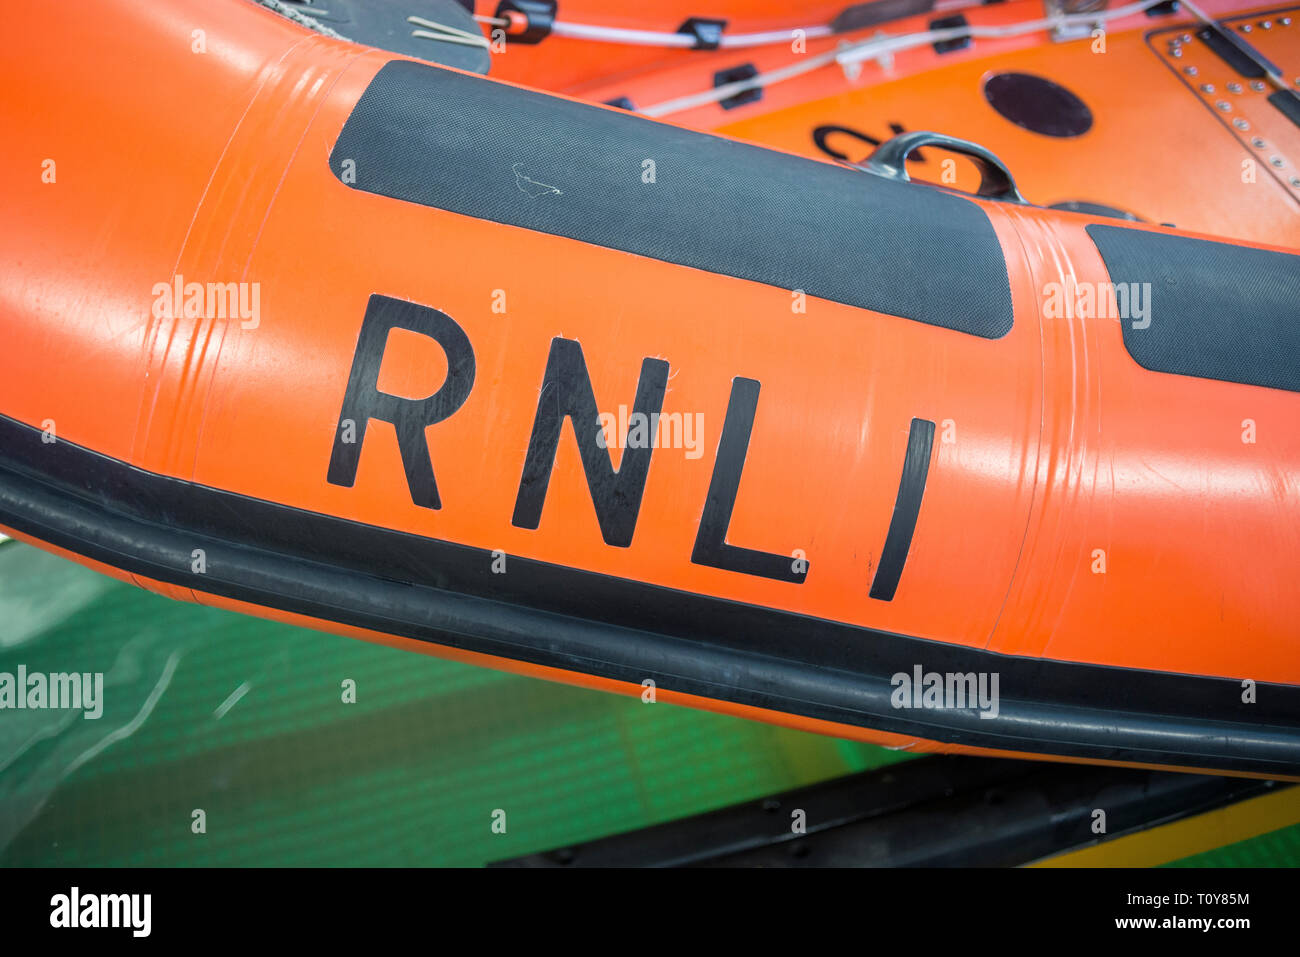 details and photos in and around the Brighton RNLI lifeboat station at Brighton Marina. - Stock Image